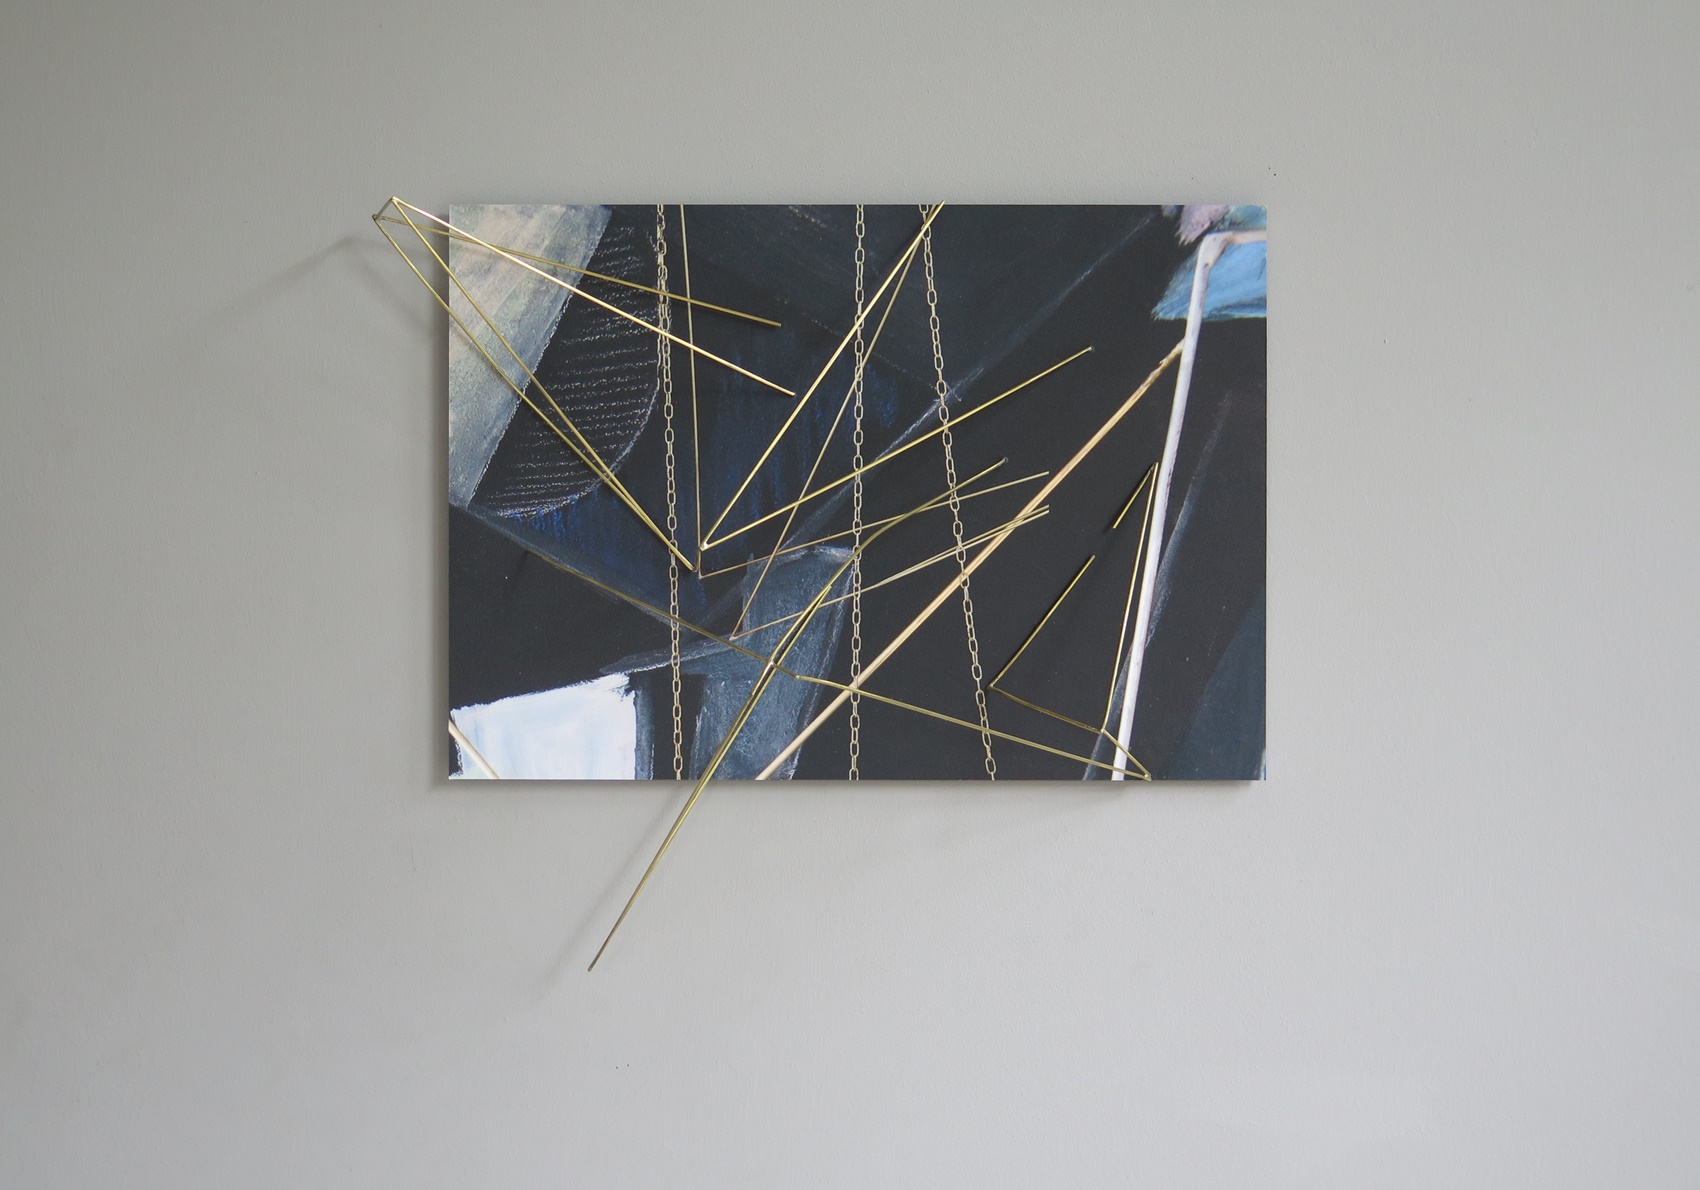 Sara Barker, On A Possible/point Of Site, 2015